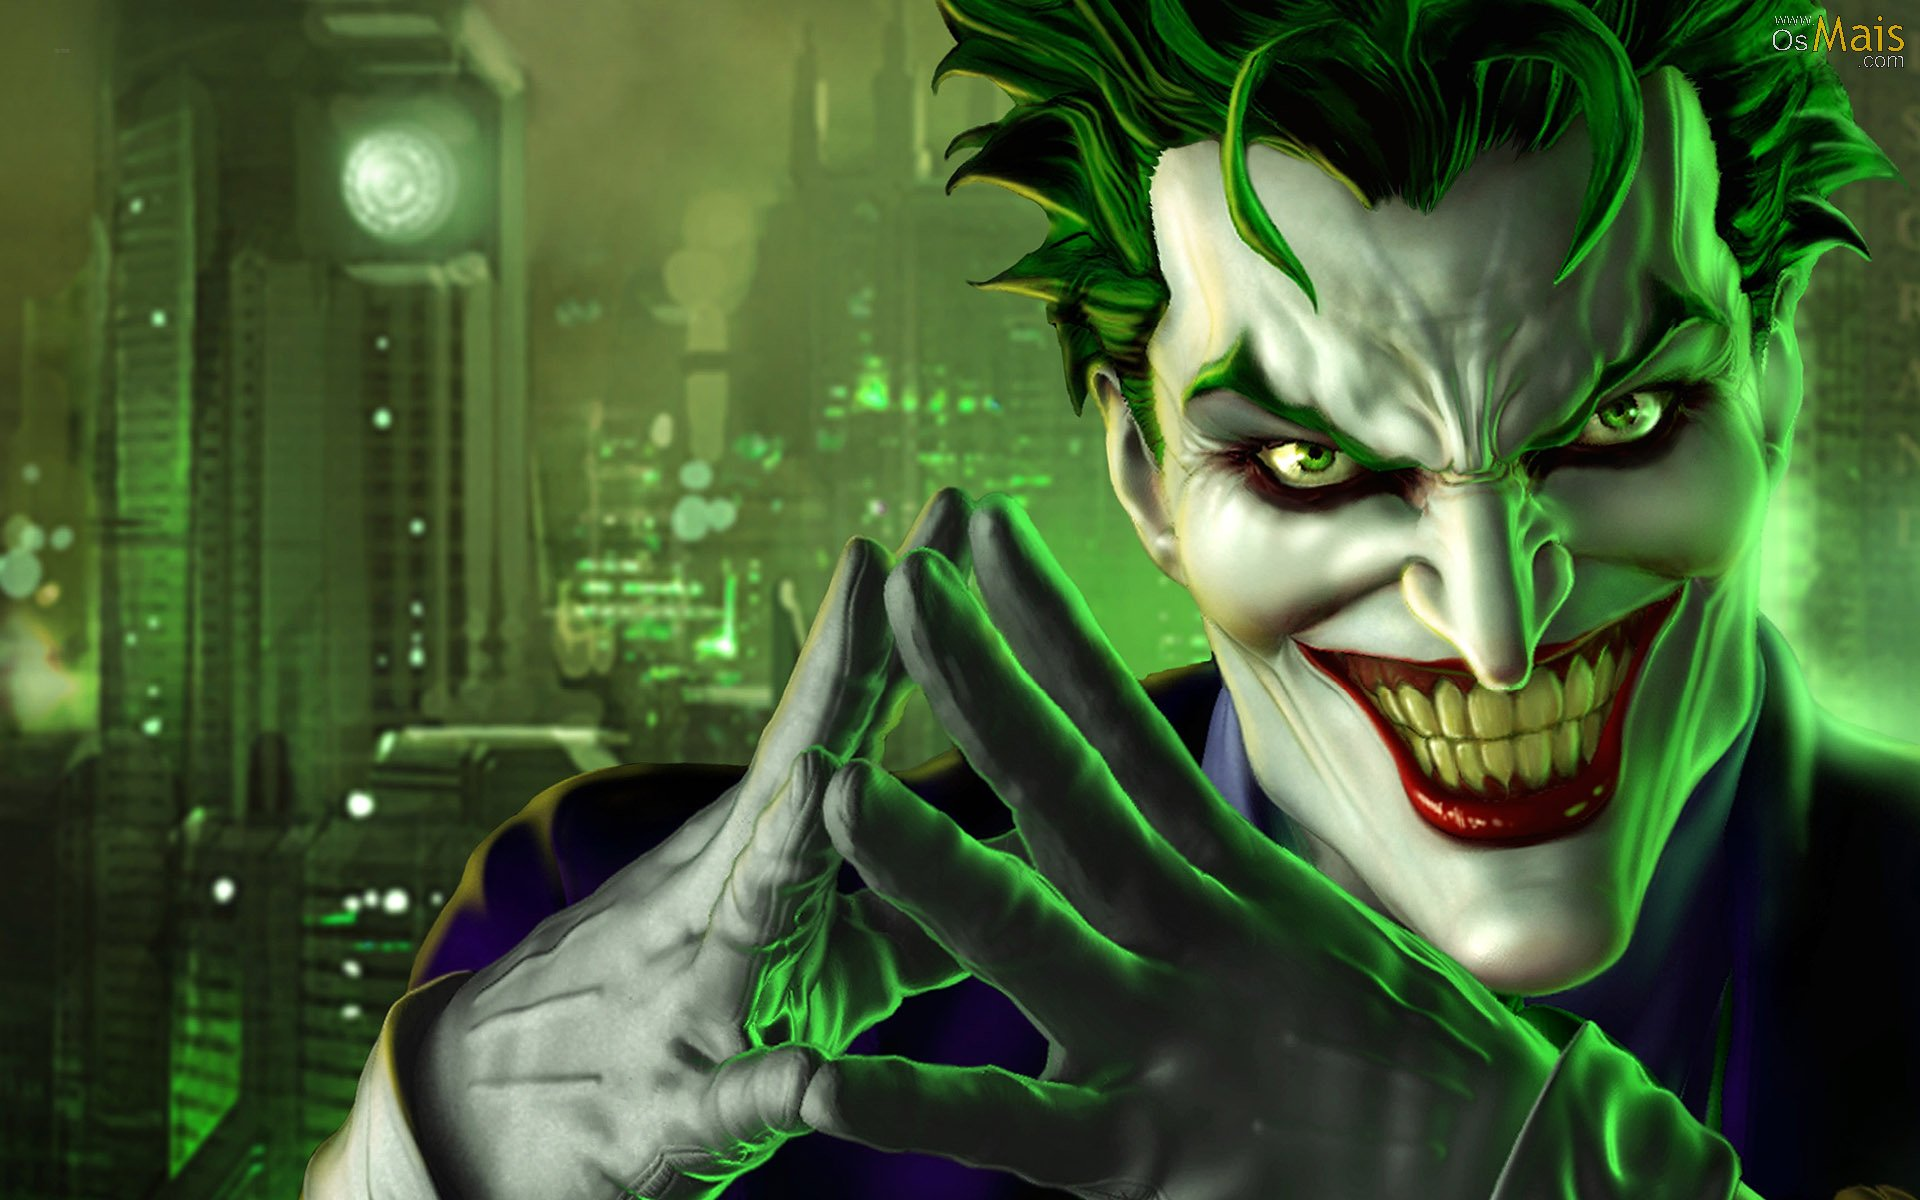 - Papel de Parede Joker - papel de parede,wallpaper,Joker,wallpapers ...